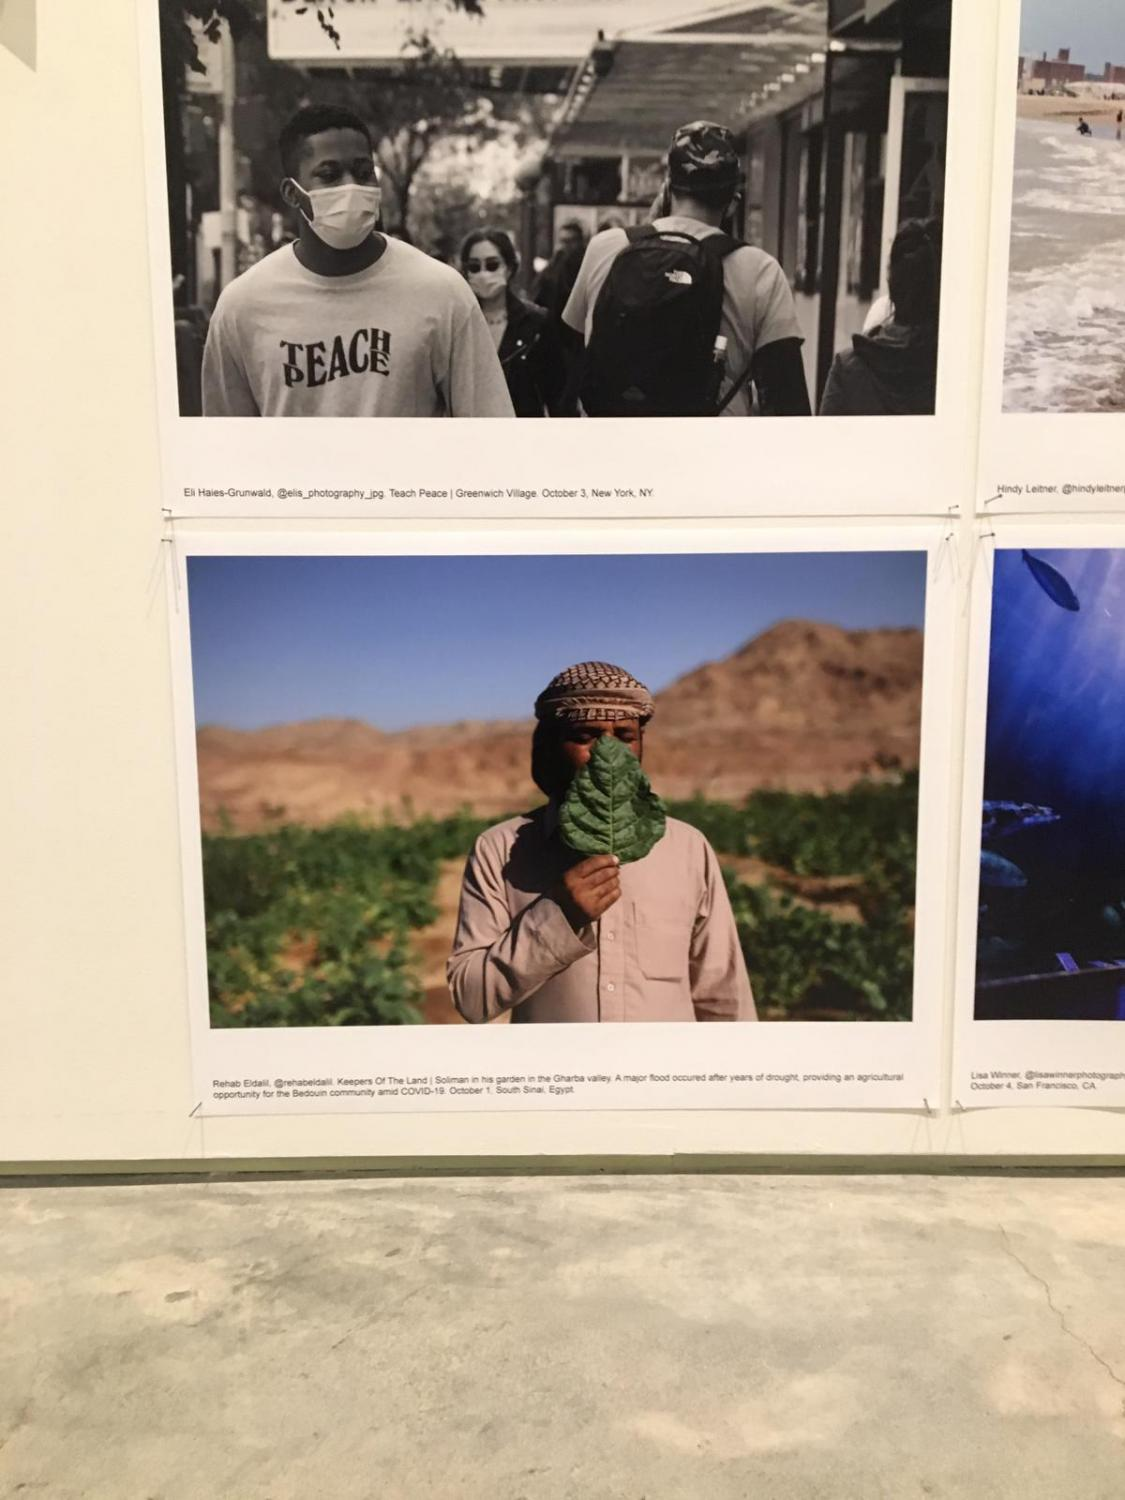 ICP Concerned Exhibition, New York, 2020 https://icpconcerned.icp.org/